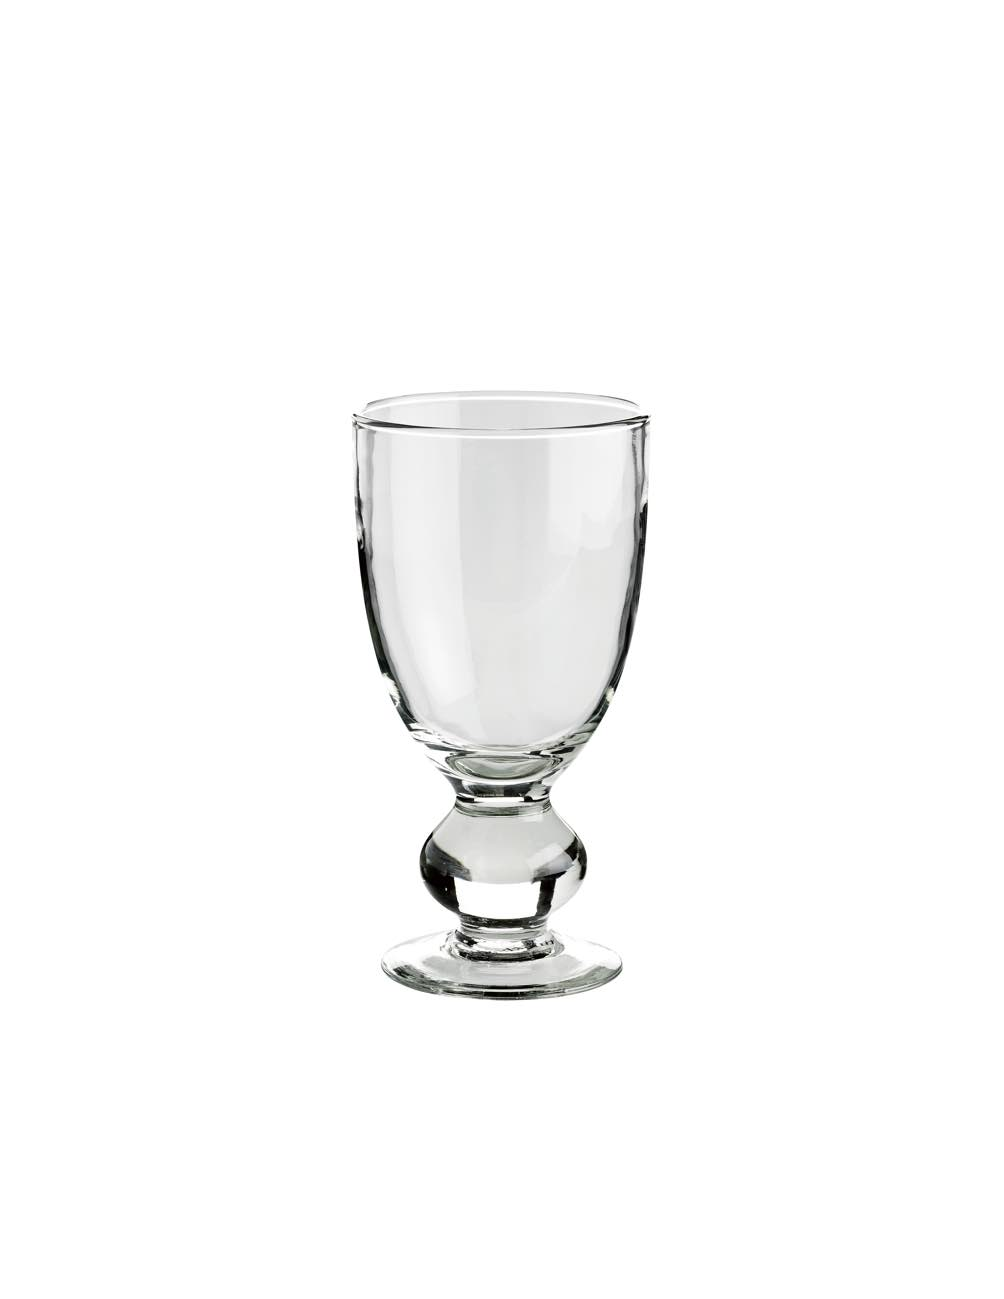 Glass for wine